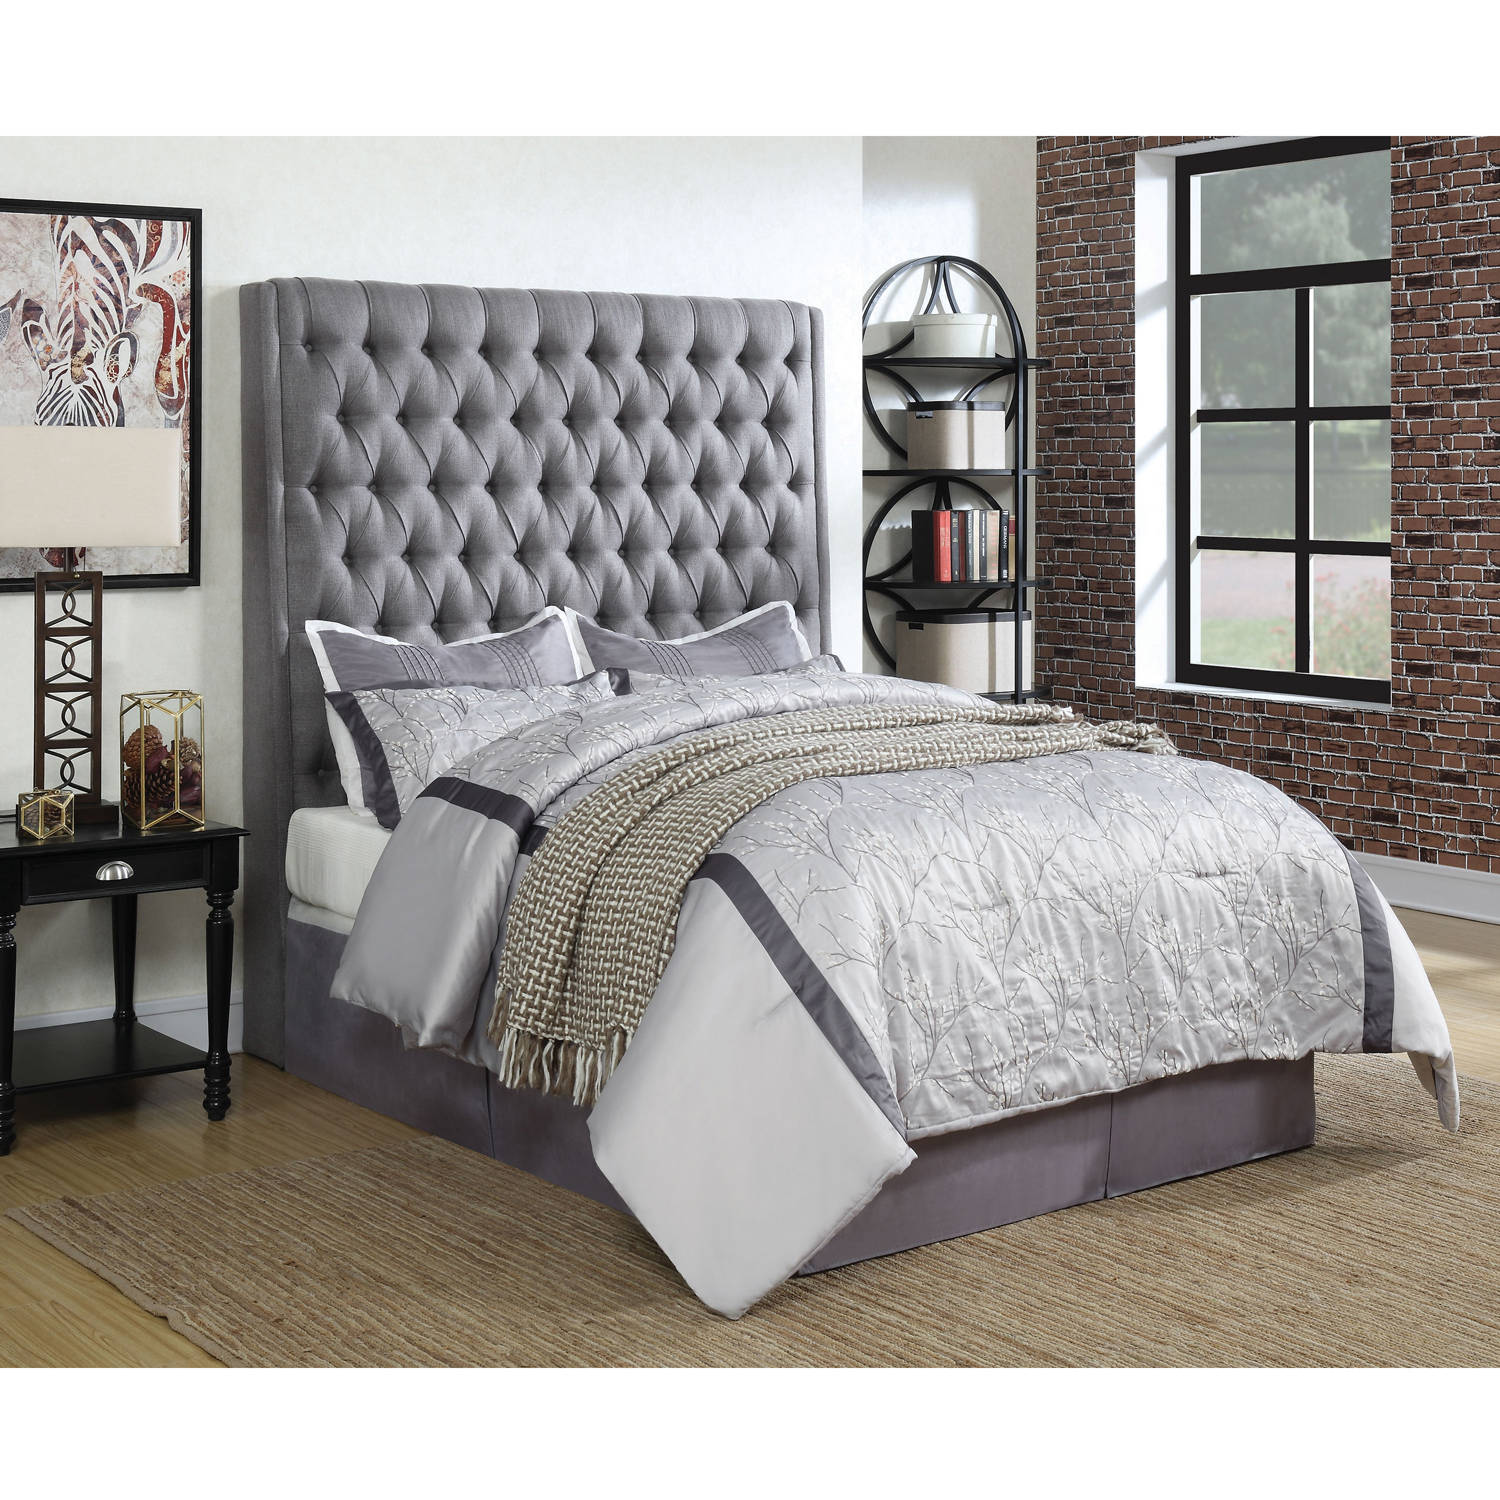 Coaster Company Camille Upholstered Queen Headboard, Grey Fabric